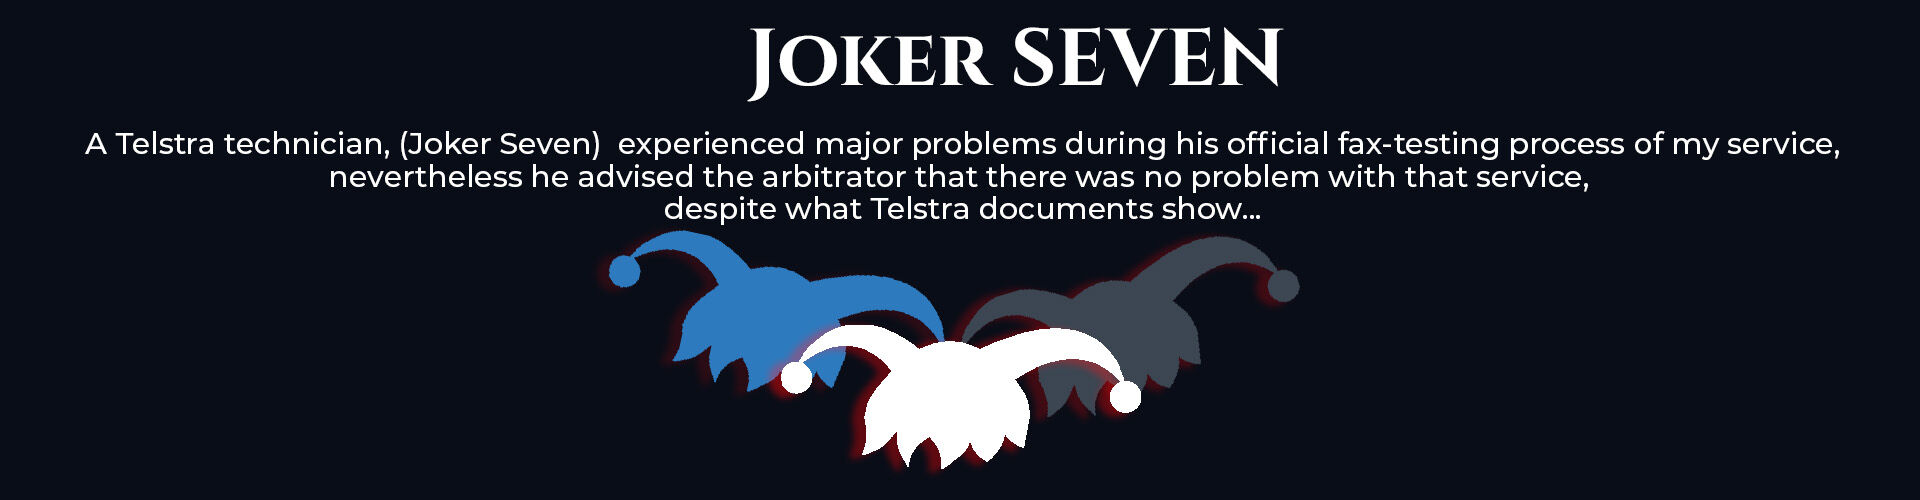 Absent Justice - My Story - Joker Seven